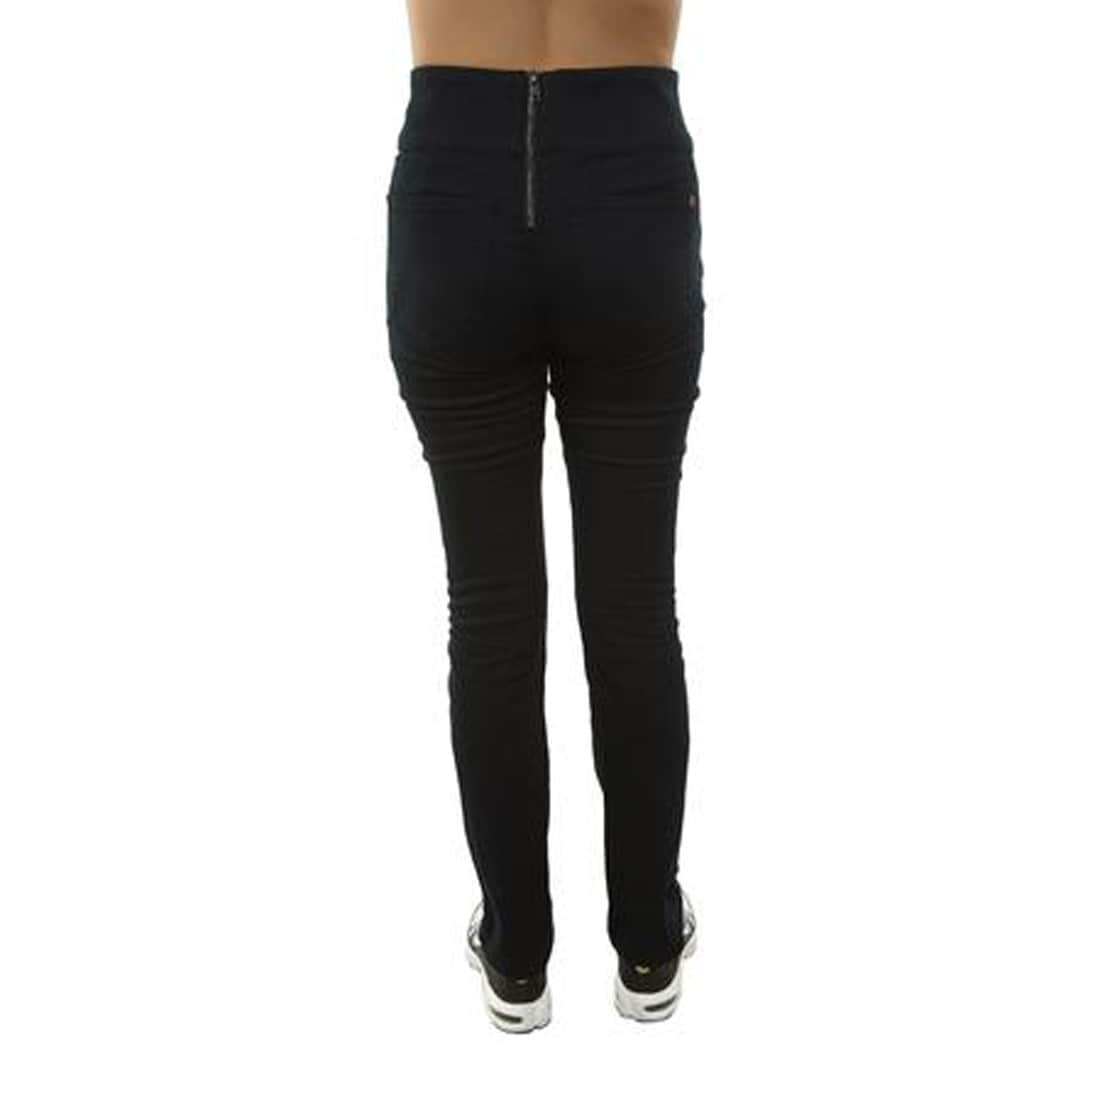 efab7afe36cdb5 Shop SPANX The Signature Straight High Rise Side Zip Straight Leg Jeans,  Very Black, 32 - Free Shipping Today - Overstock - 28362203